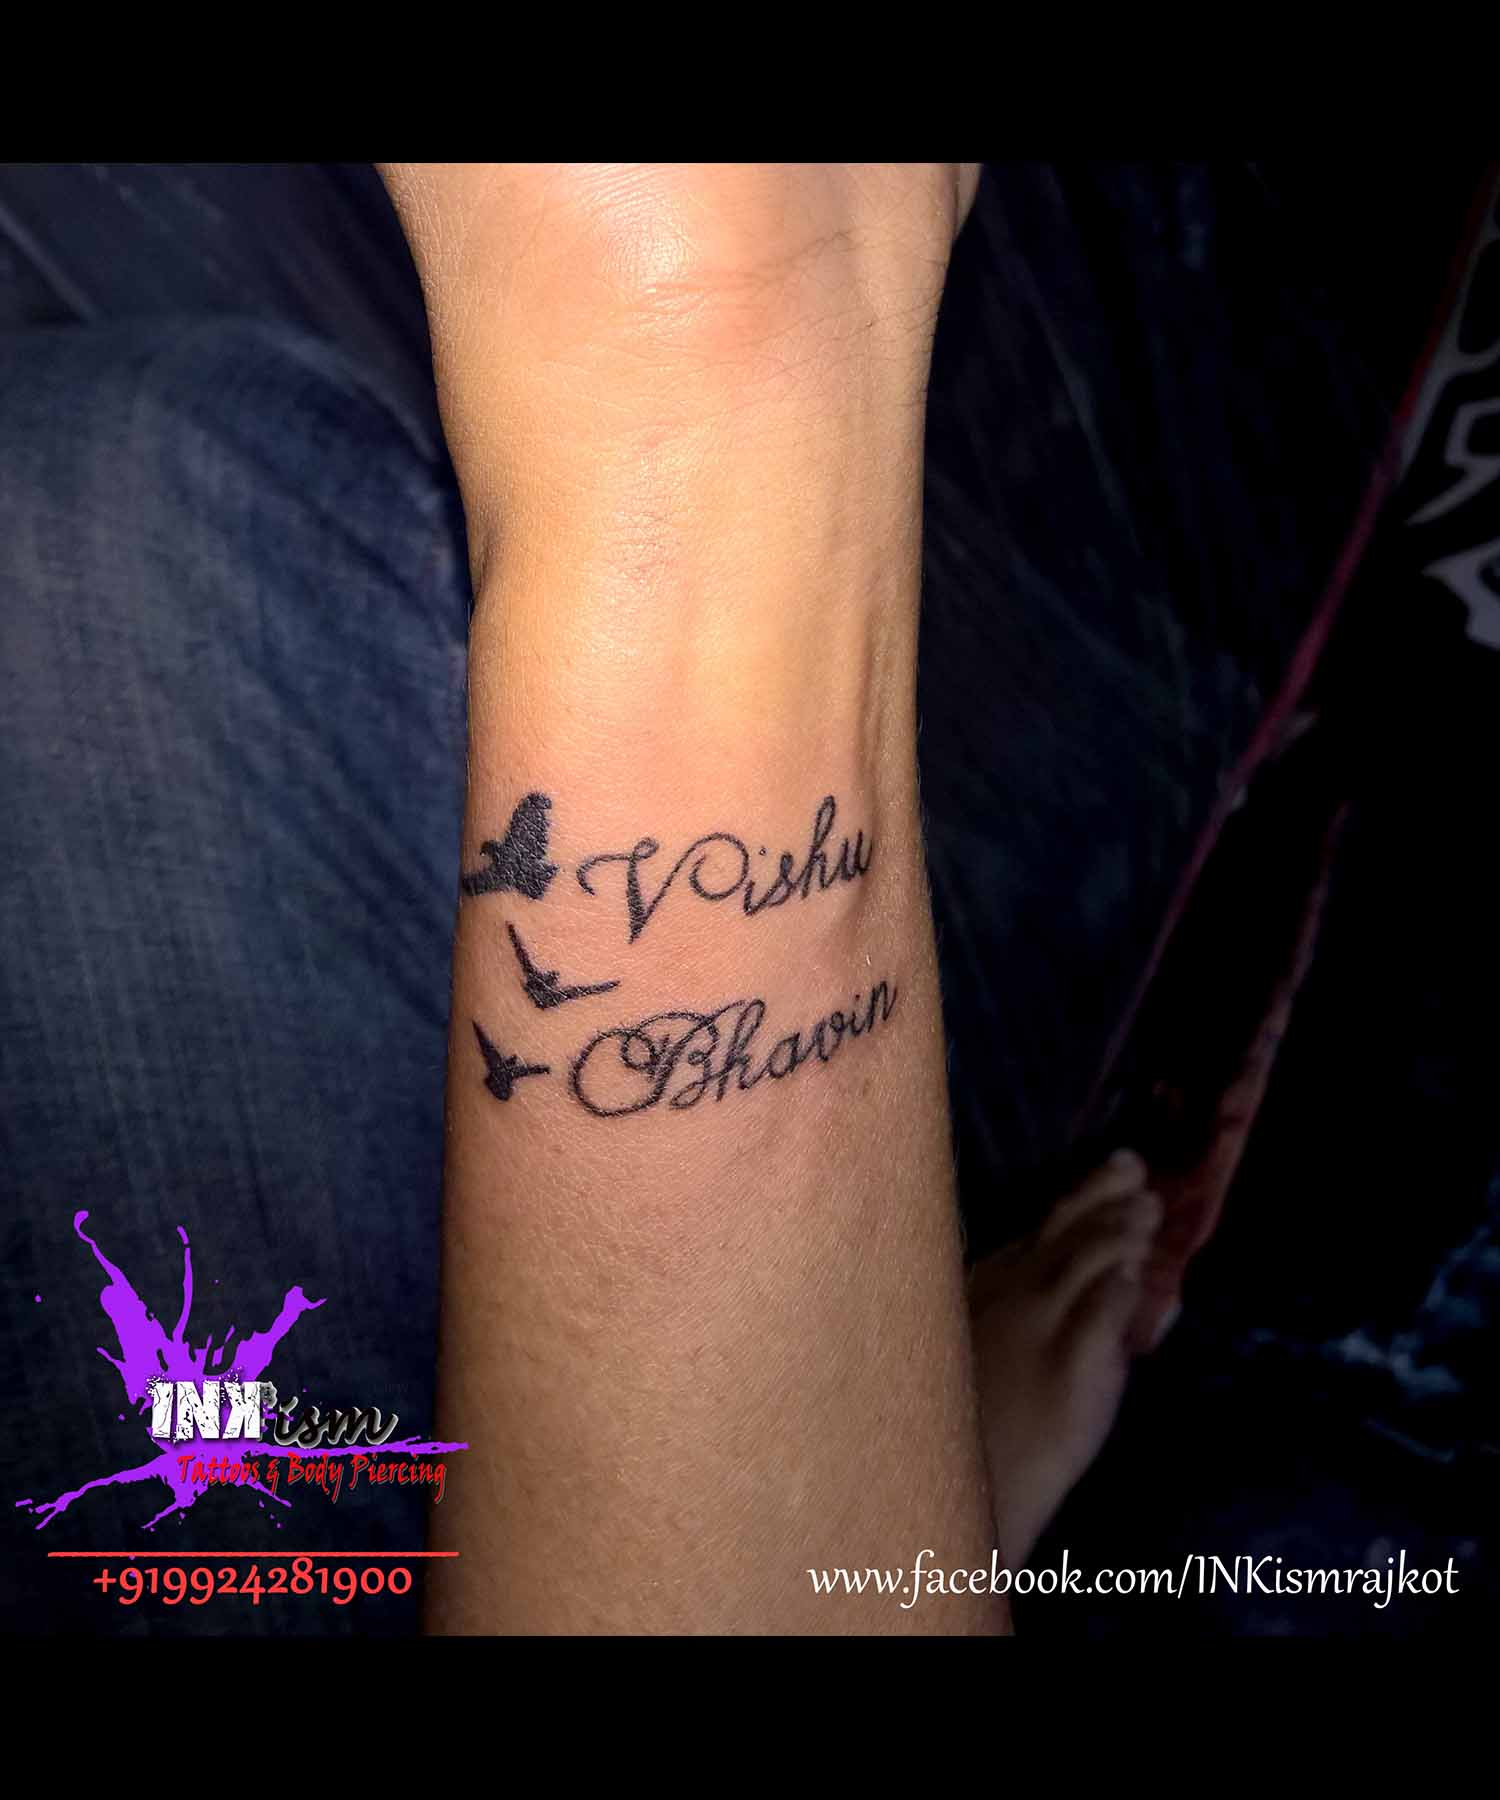 Calligraphy Tattoo, Birds tattoo, Inkism tattoo and body piercing rajkot gujarat